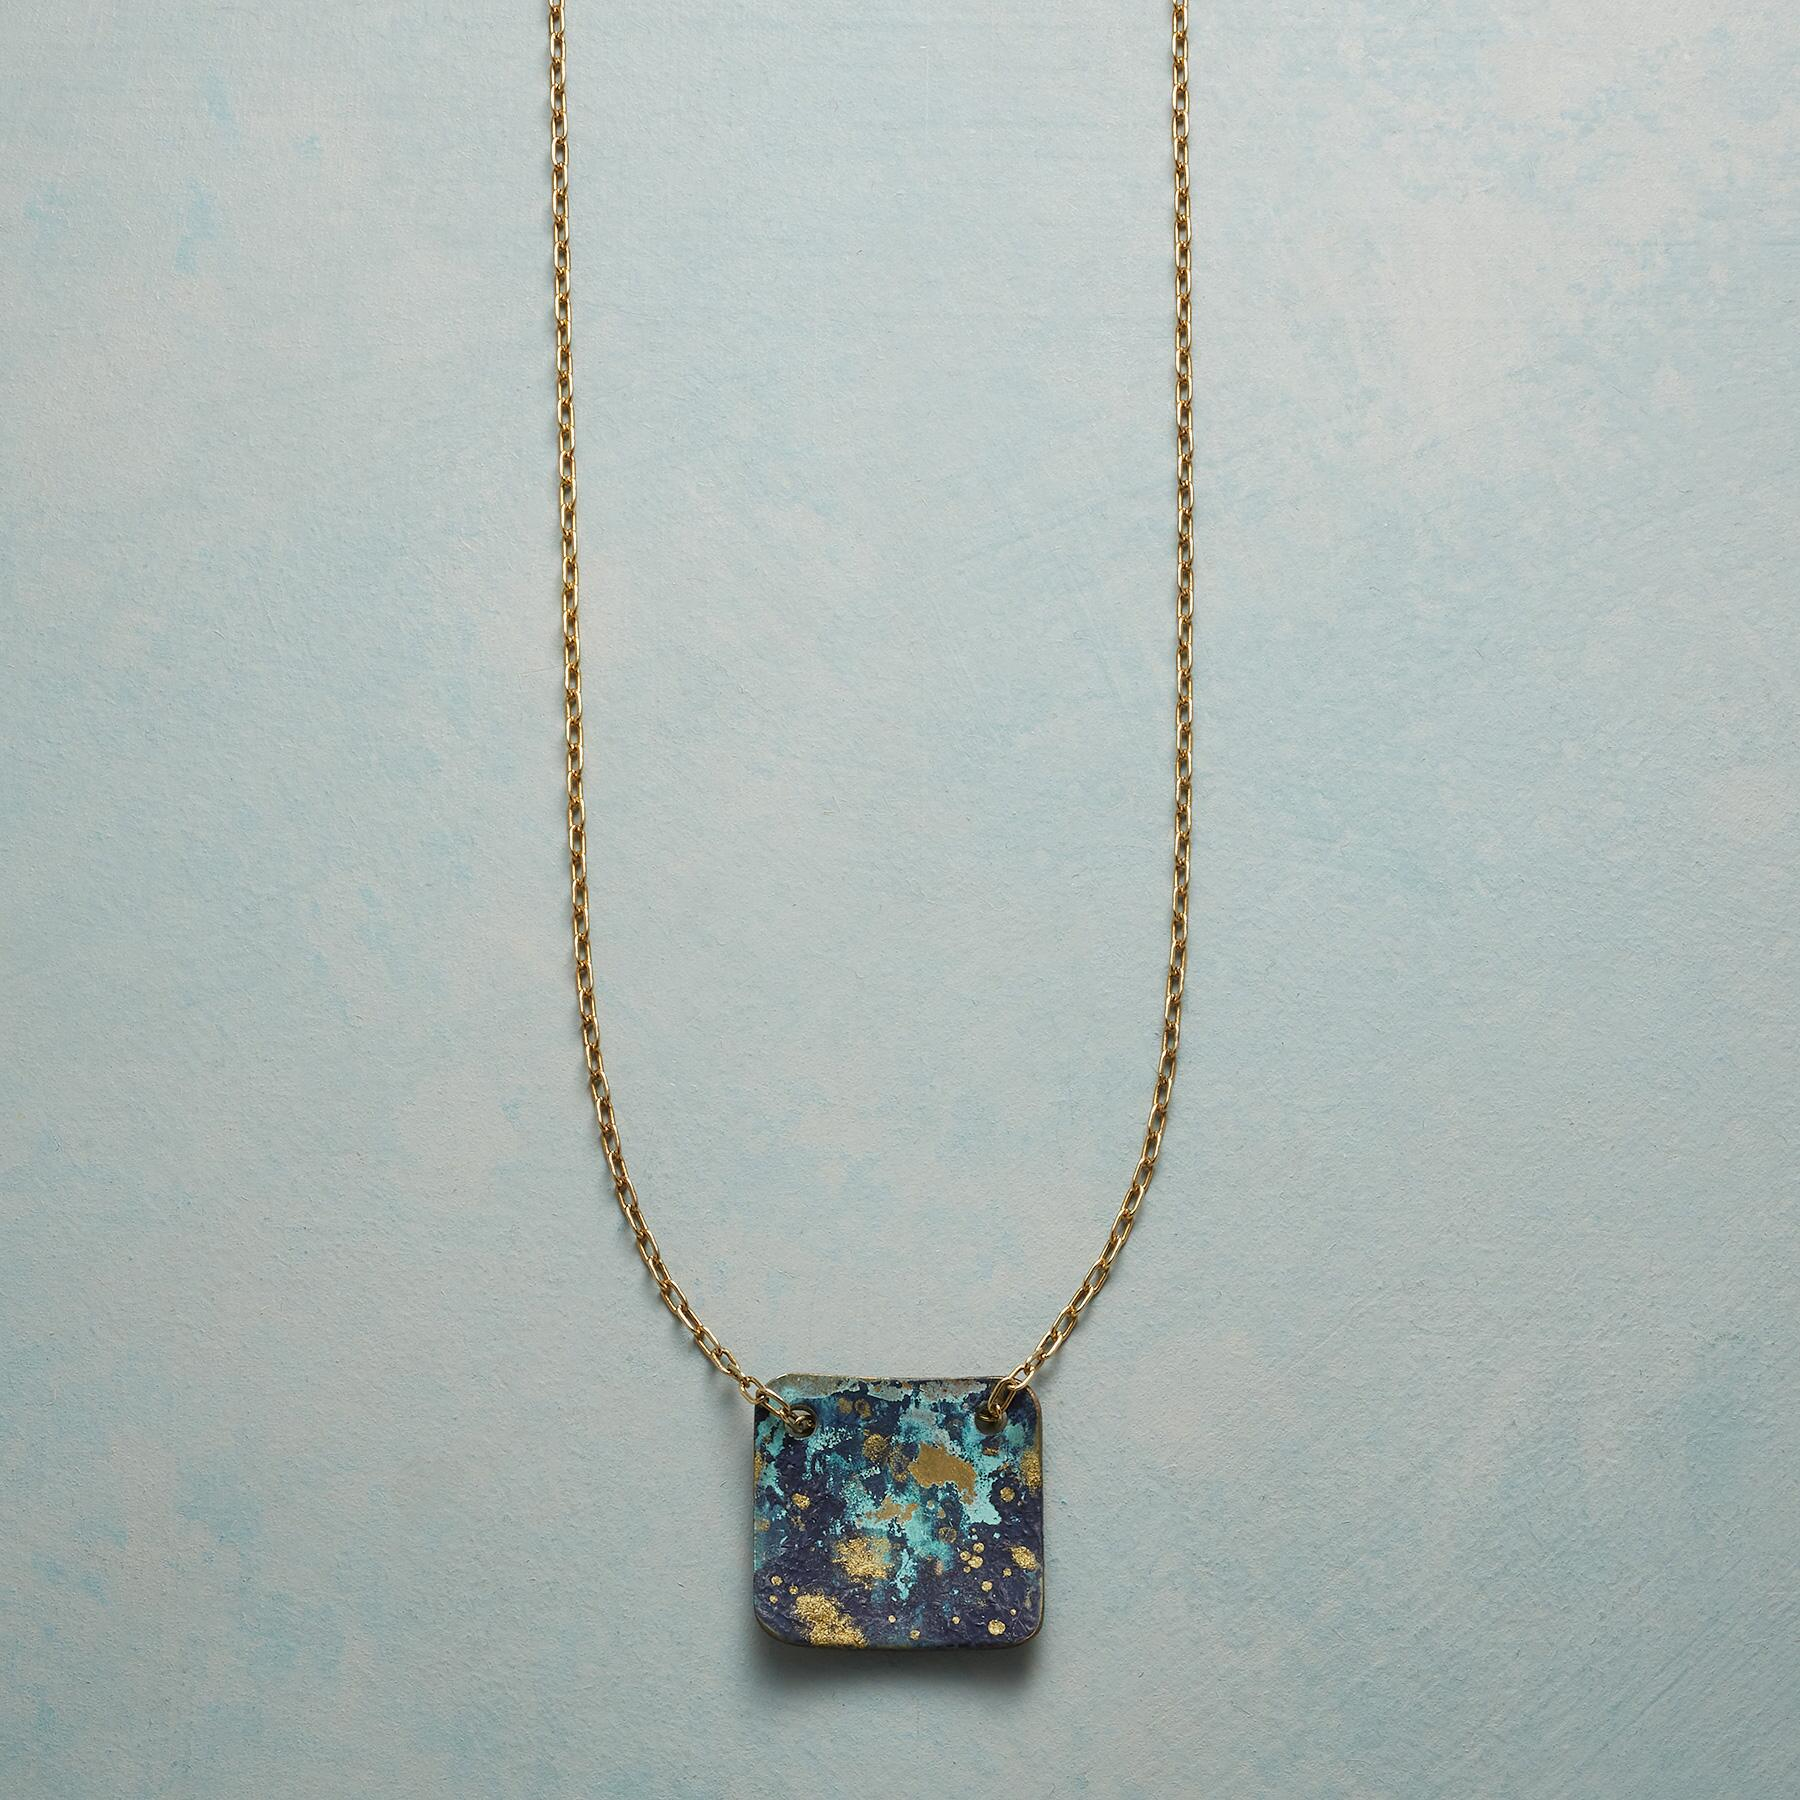 BLUE VERDIGRIS PENDANT NECKLACE: View 1